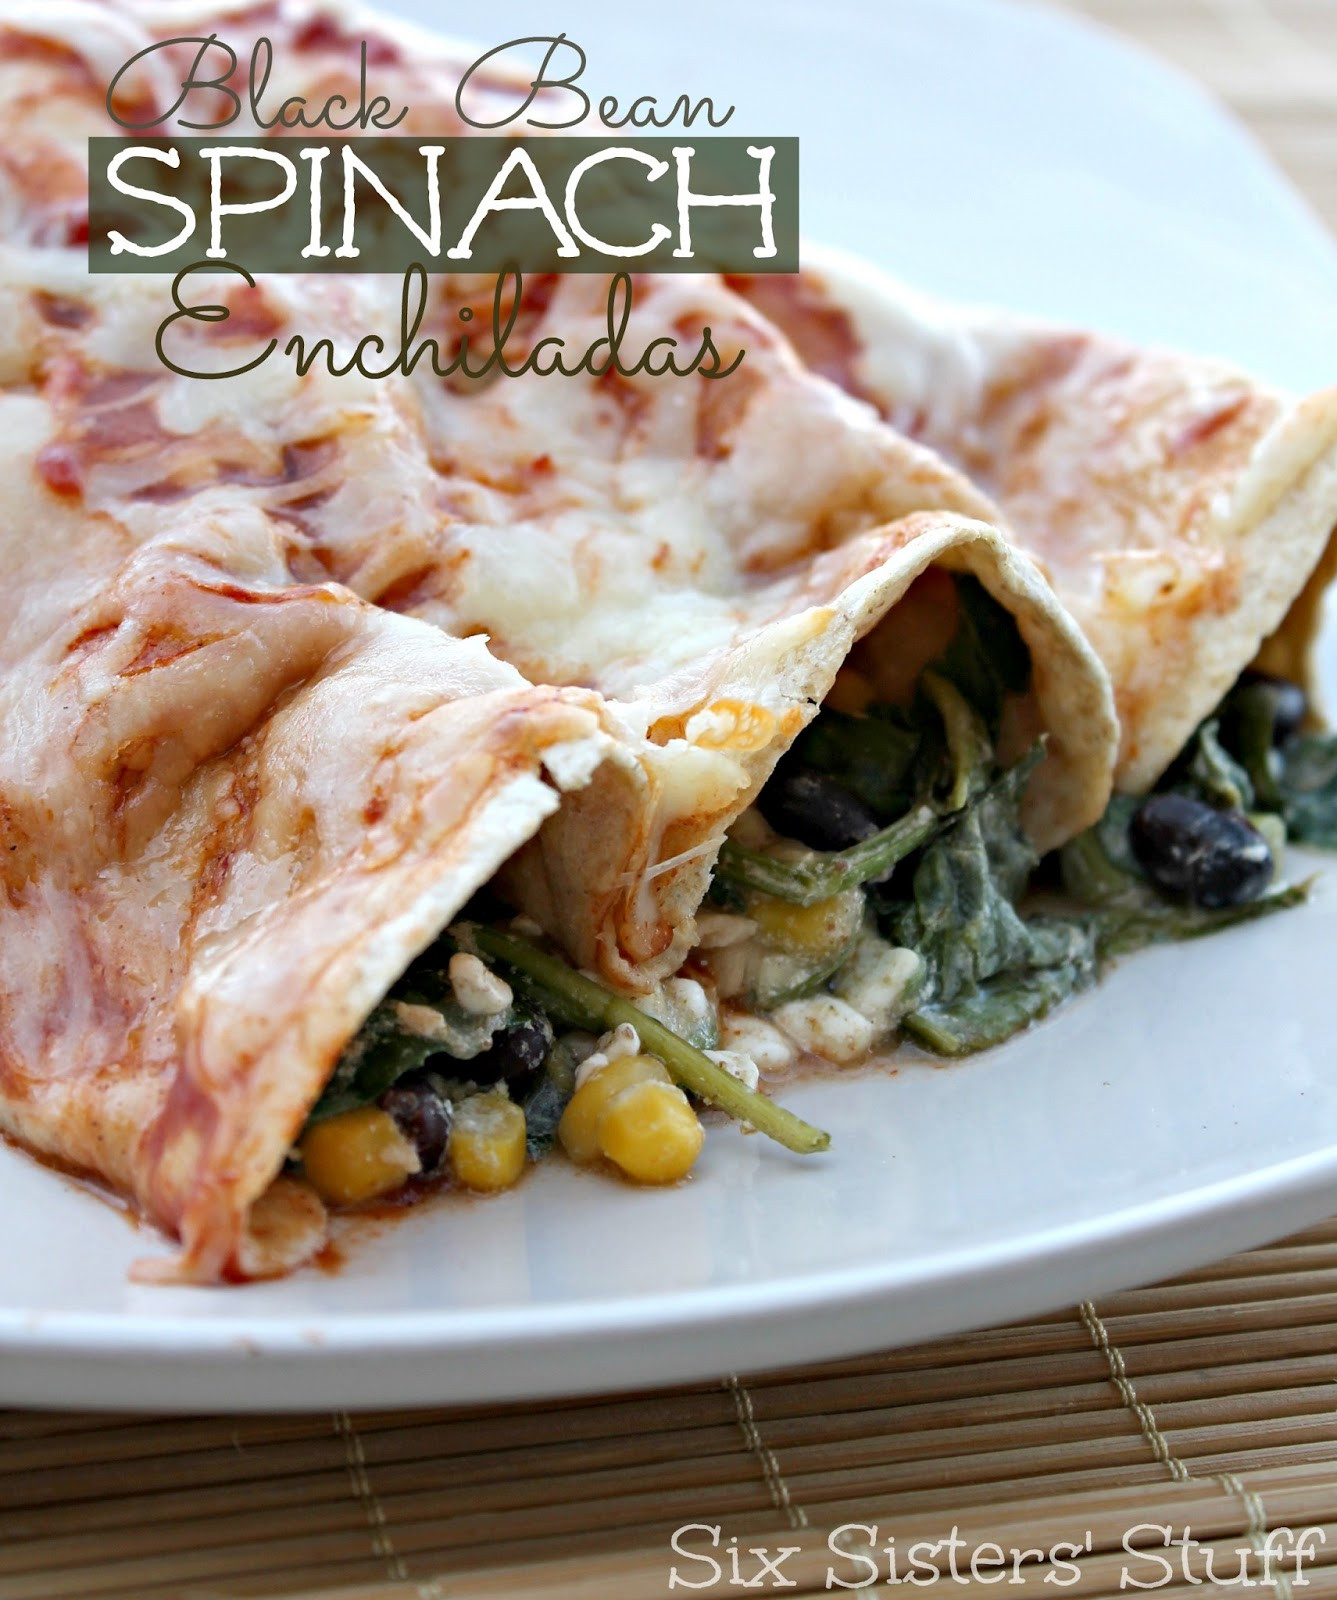 Healthy Spinach Enchiladas 20 Of the Best Ideas for Healthy Black Bean Spinach Enchiladas